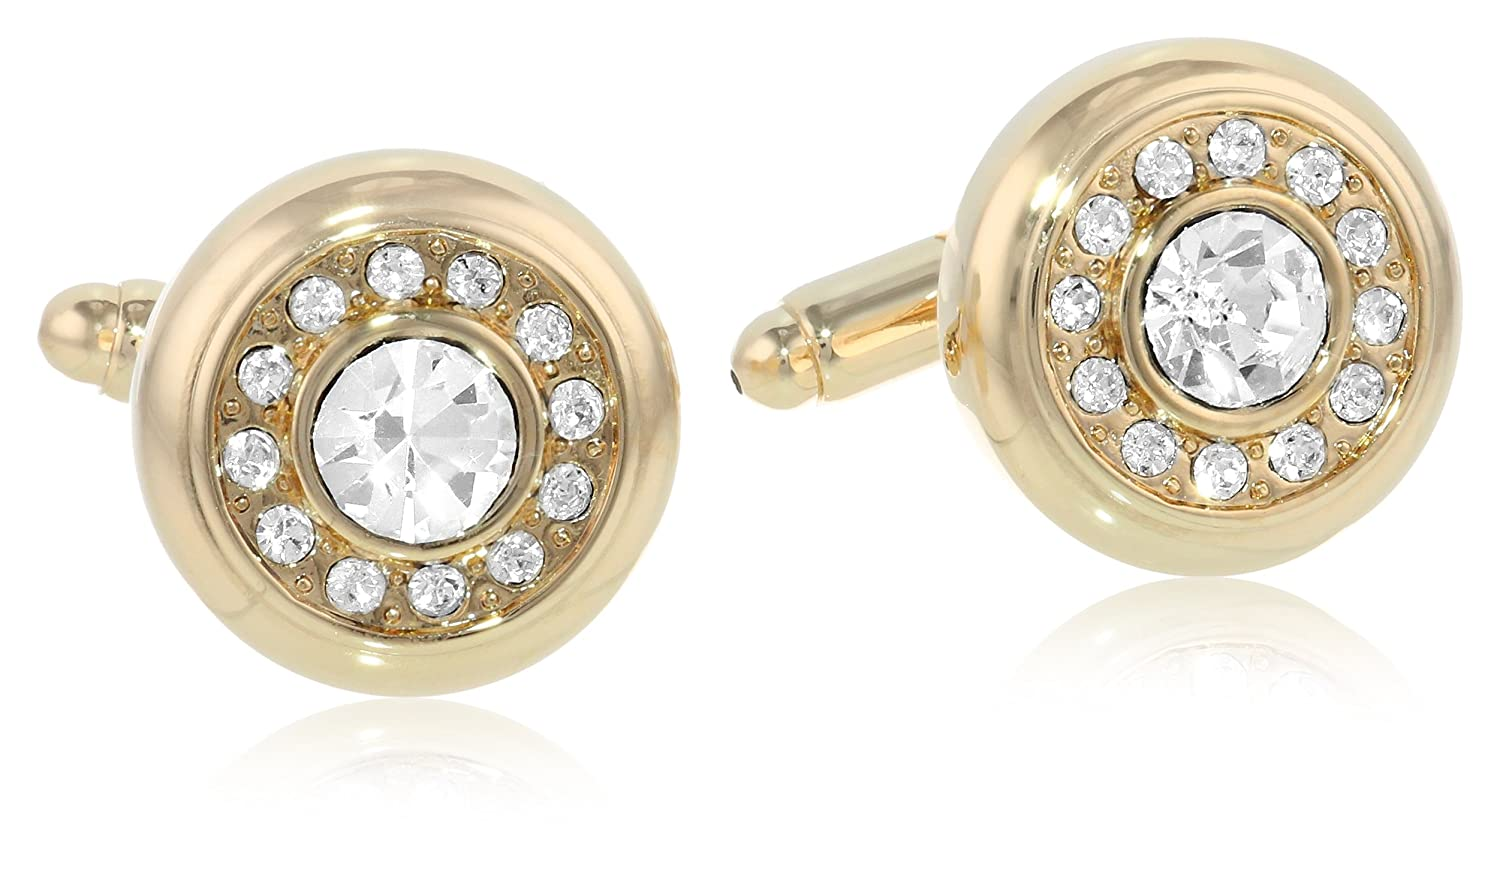 Stacy Adams Mens Round Gold Cuff Link W//Crystals